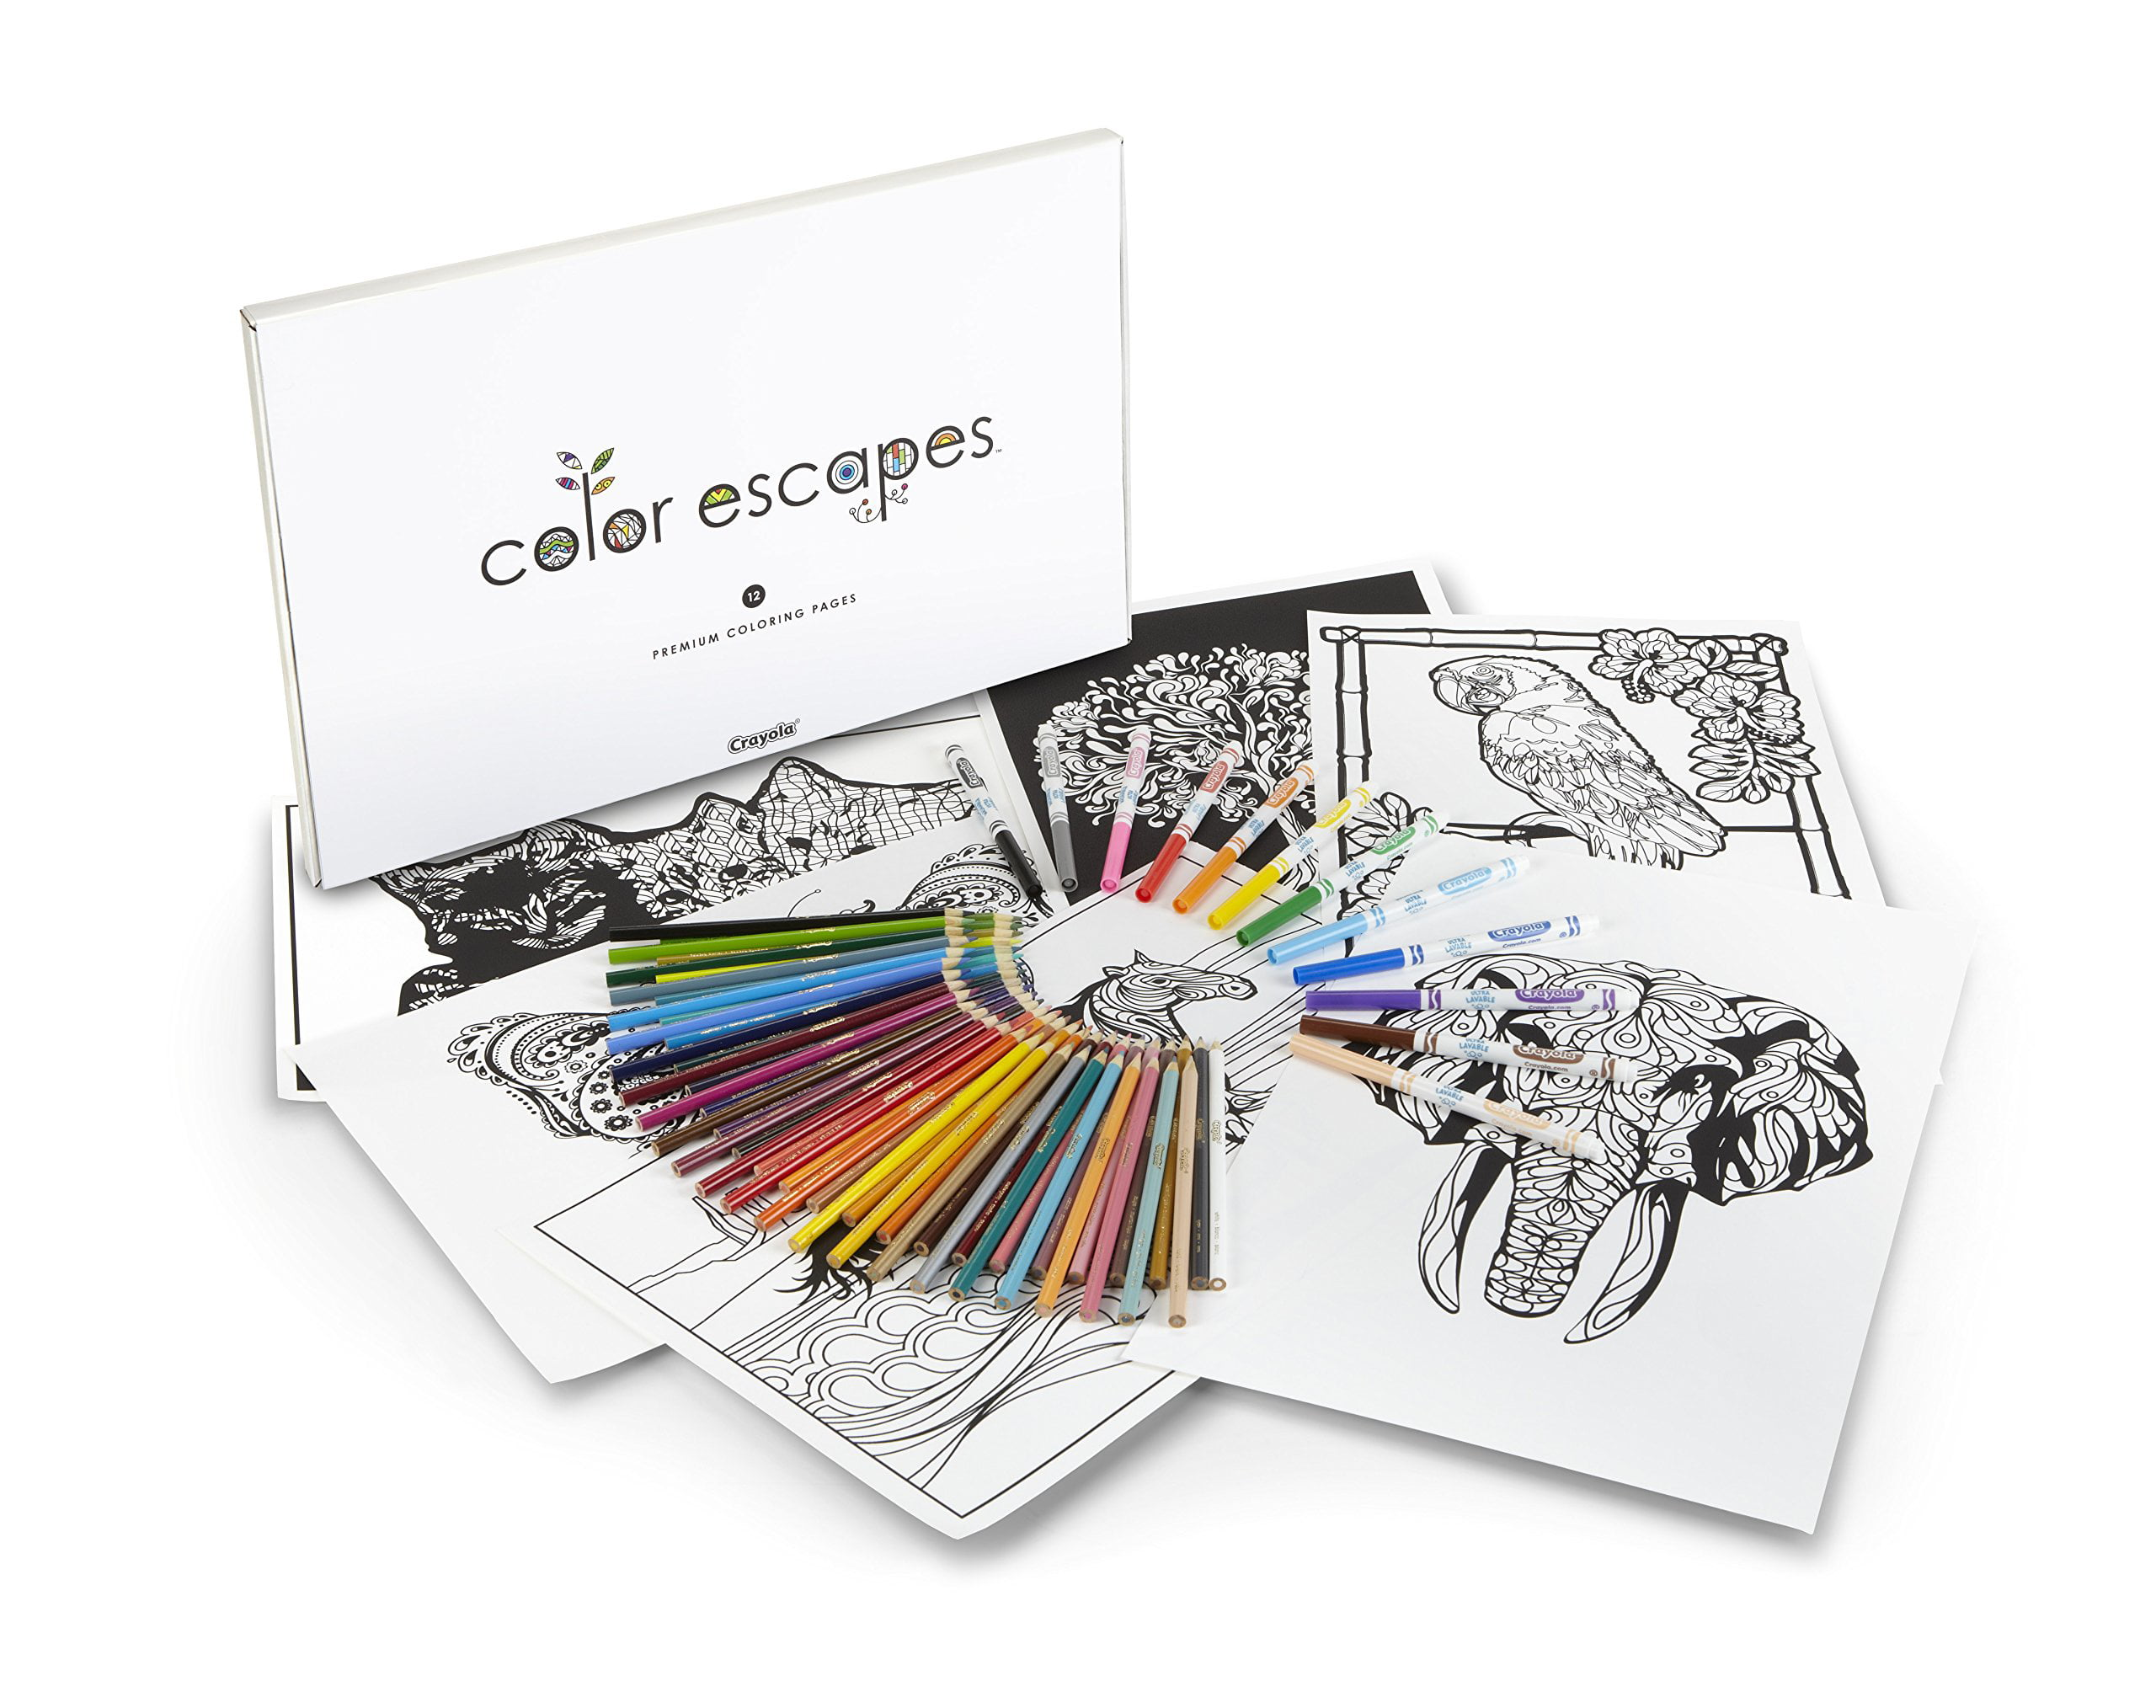 Crayola Color Escapes Coloring Pages & Pencil Kit, Nature ...